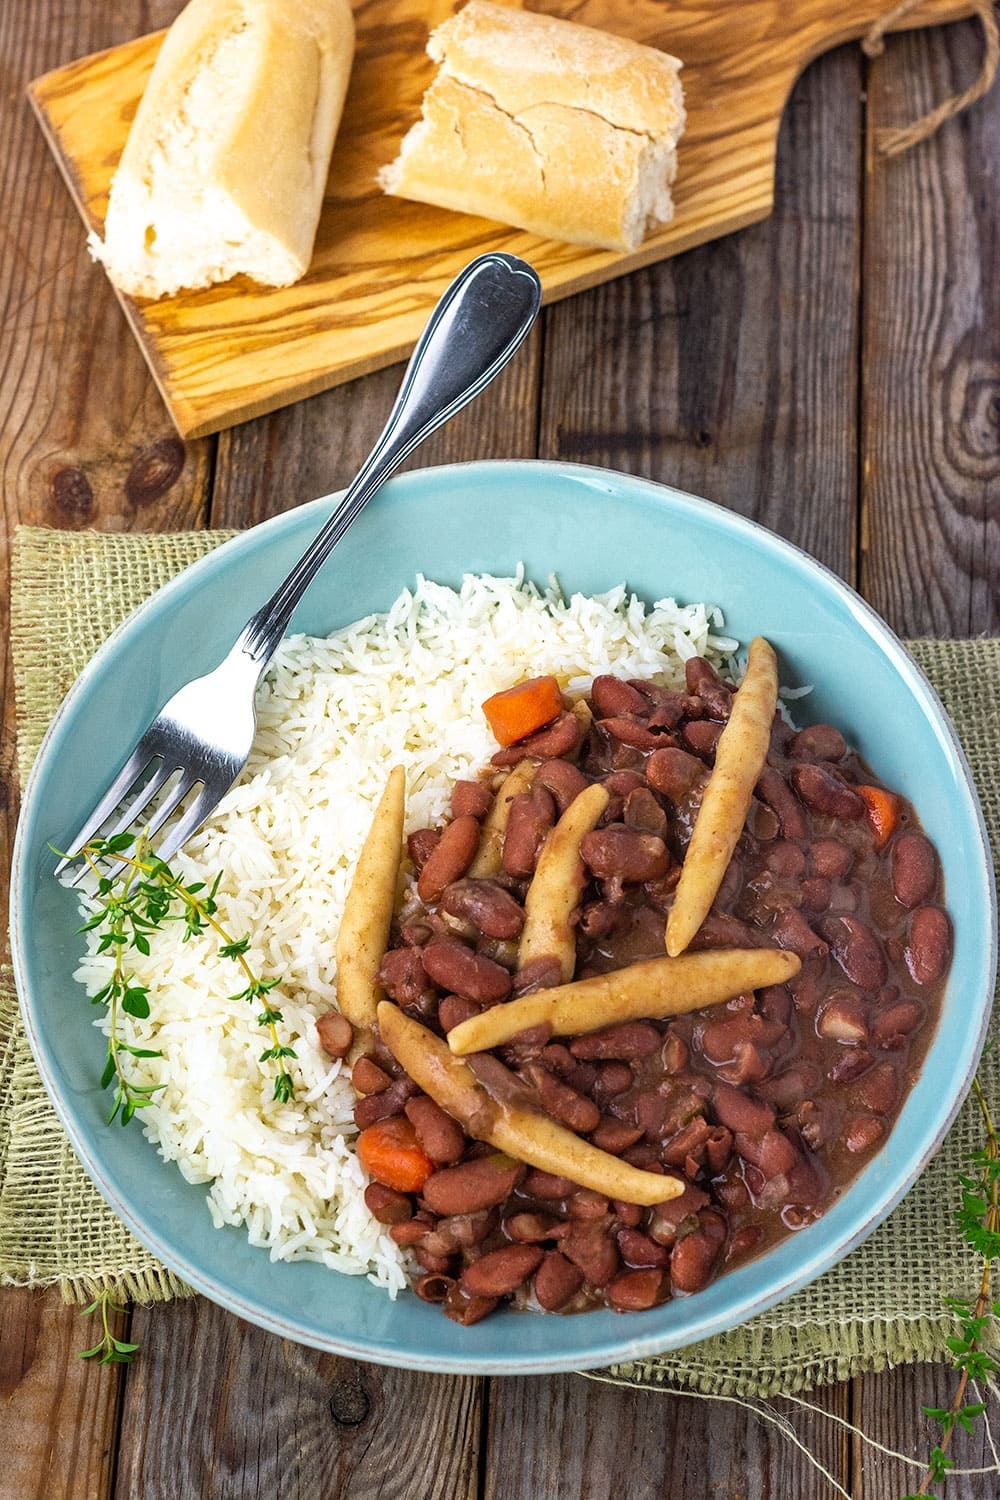 Jamaican stew peas with spinners, carrots, on steamed rice in a blue bowl, stainless steel fork, garnished with thyme sprigs on a brown wooden background with cutting board and bread overlay